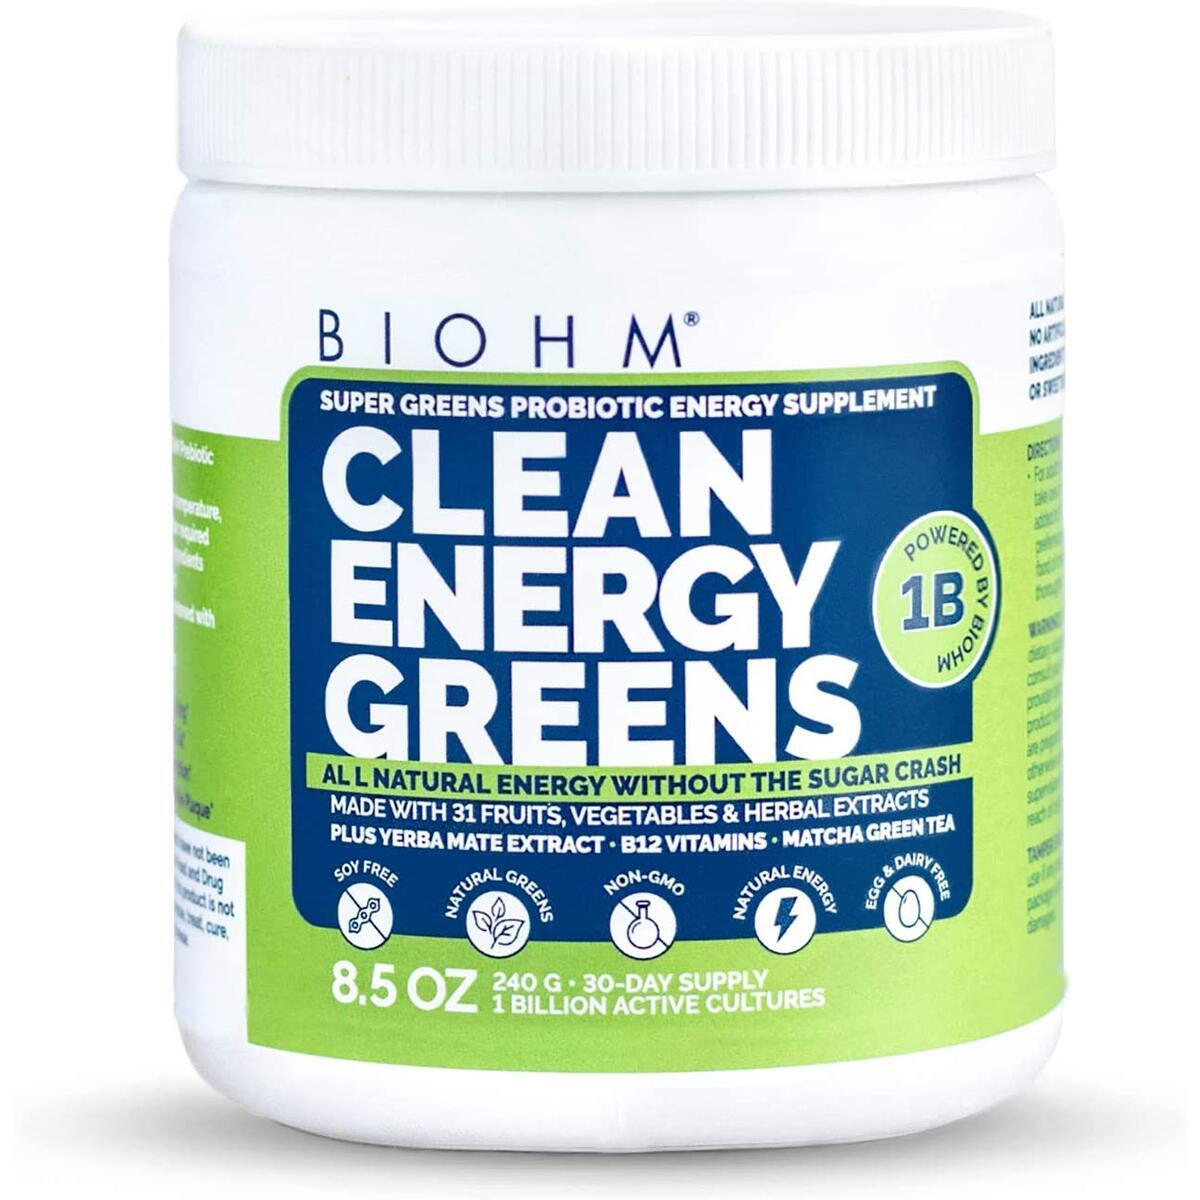 BIOHM Clean Energy Greens with Probiotics, Super Greens Superfood , All Natural Energy Powder Without Sugar Crash, 31 Natural Fruit, Vegetable and Herbal Extracts, Allergen Free, Non GMO, 30 Servings